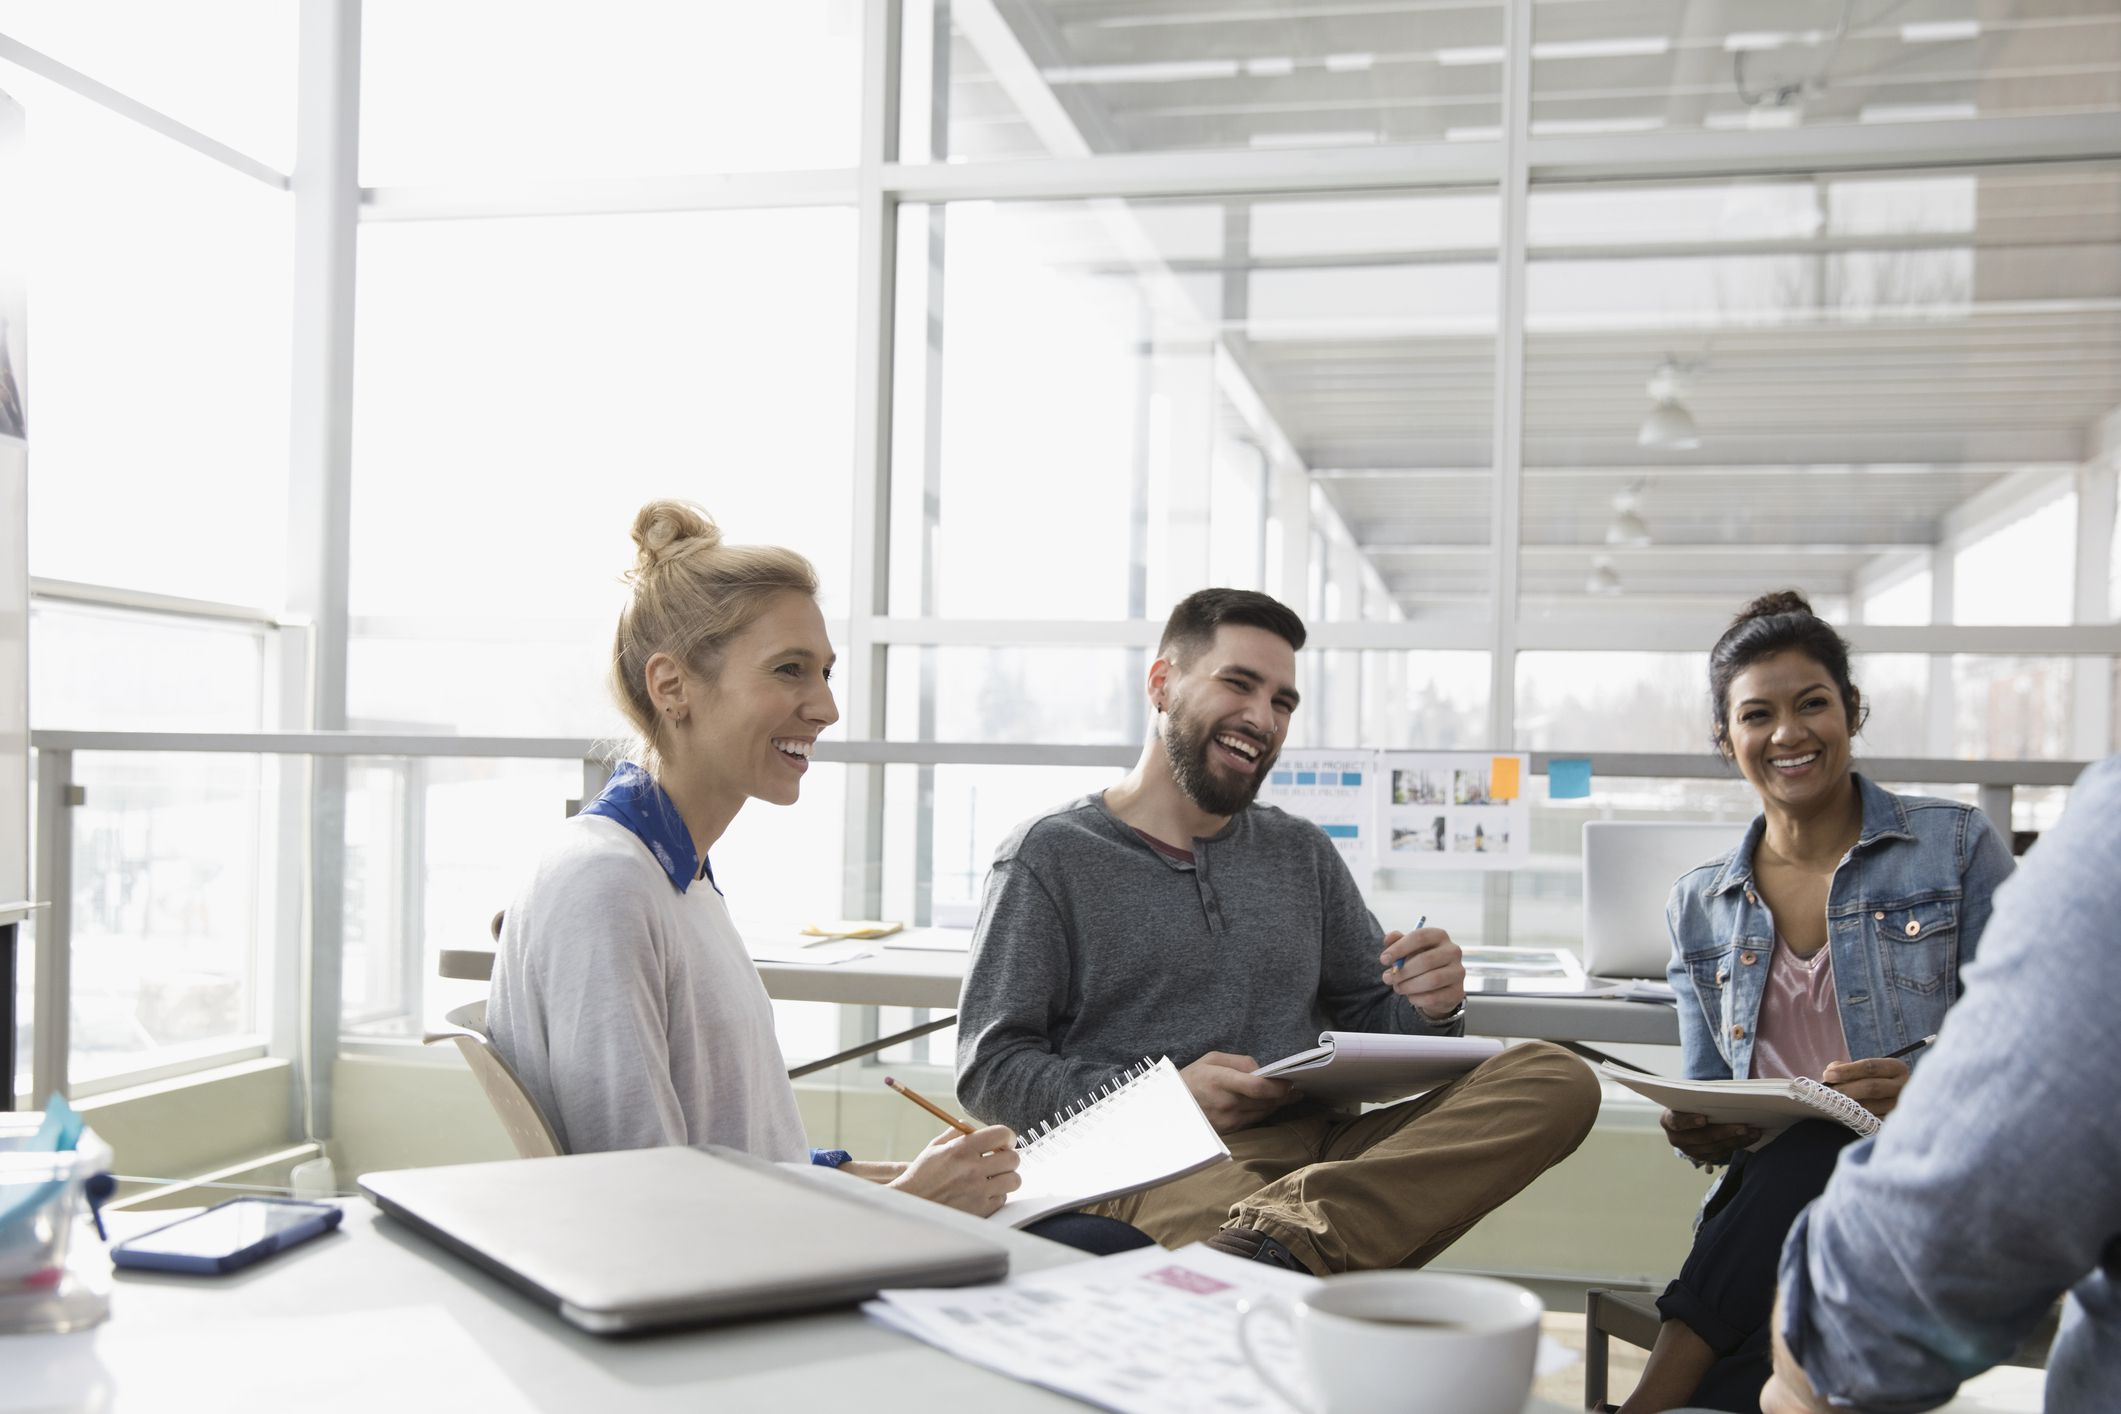 10 Tips For Dealing With People At Work